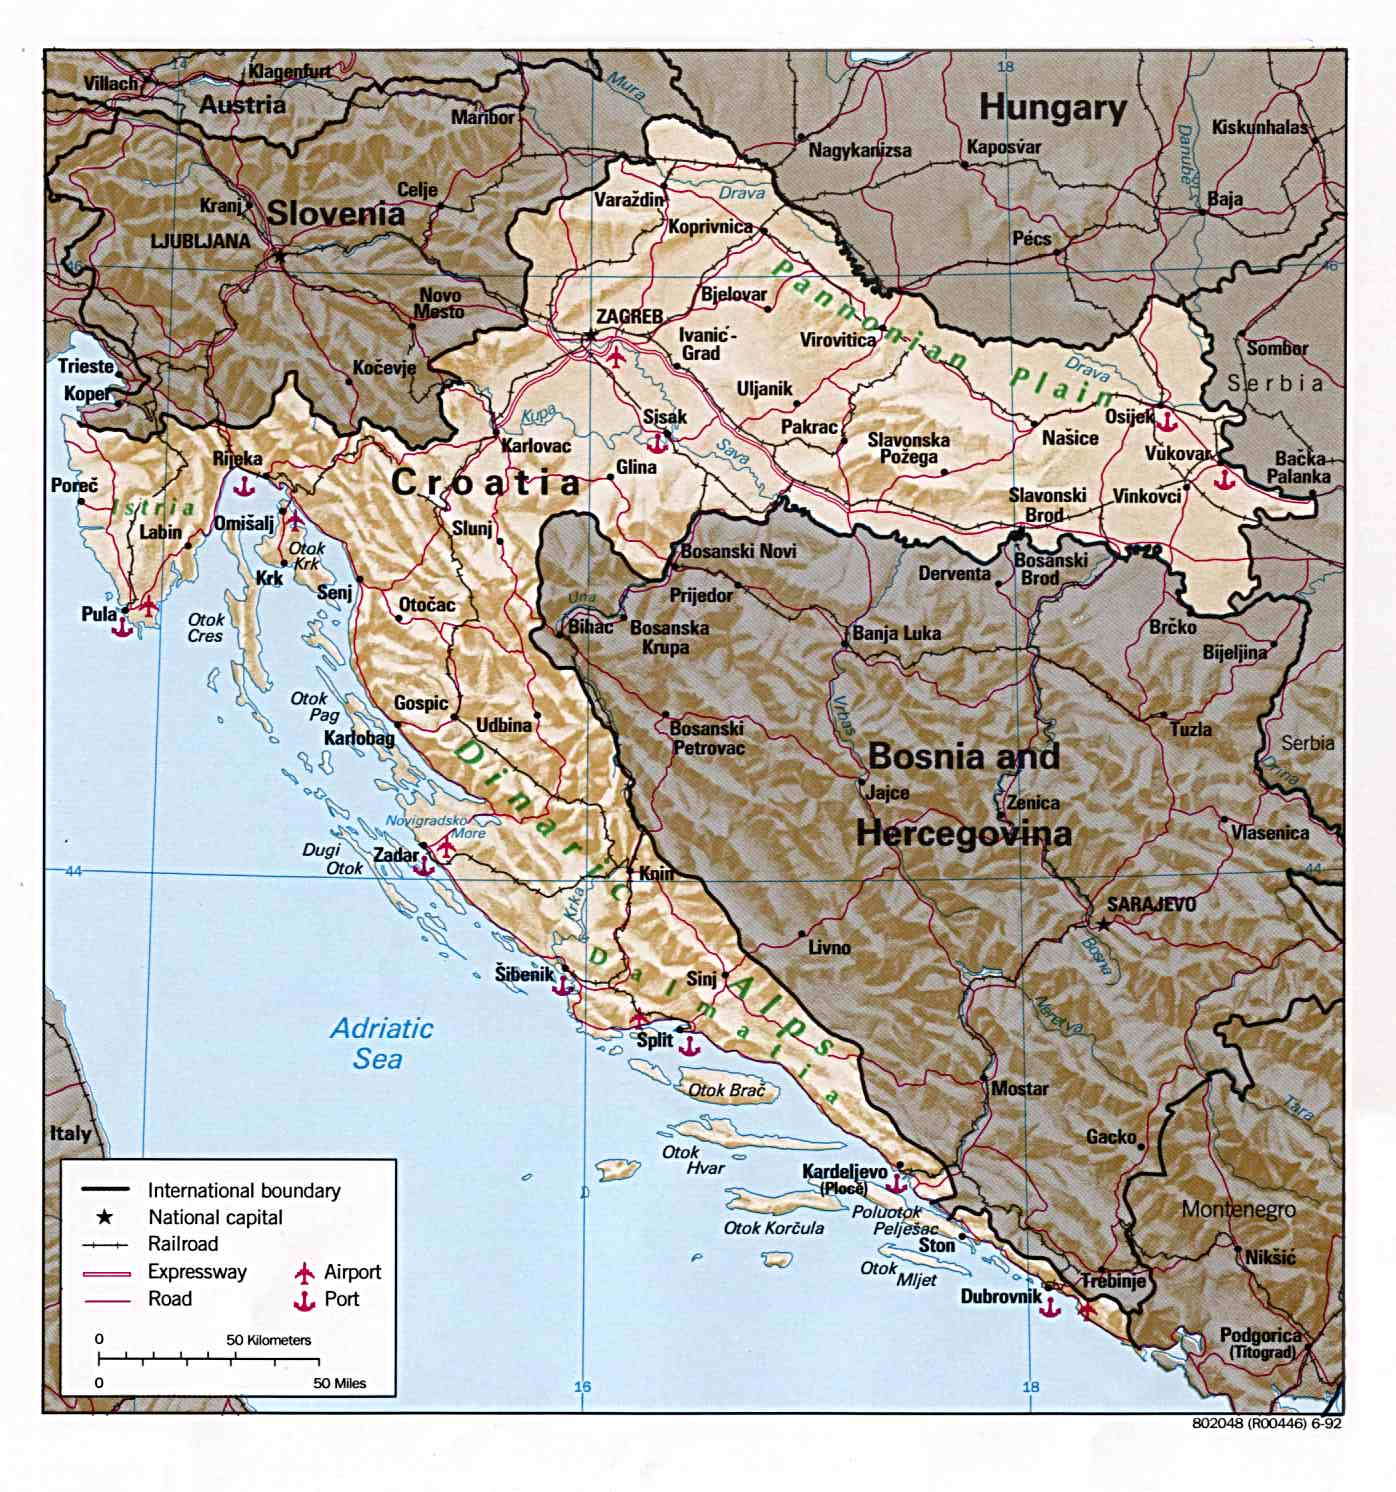 an introduction to the geography and history of the croatia Split (croatian pronunciation: ( listen) see other names) is the second-largest city of croatia and the largest city of the region of dalmatia, with about 200,000 people living in its urban area it lies on the eastern shore of the adriatic sea and is spread over a central peninsula and its surroundings.